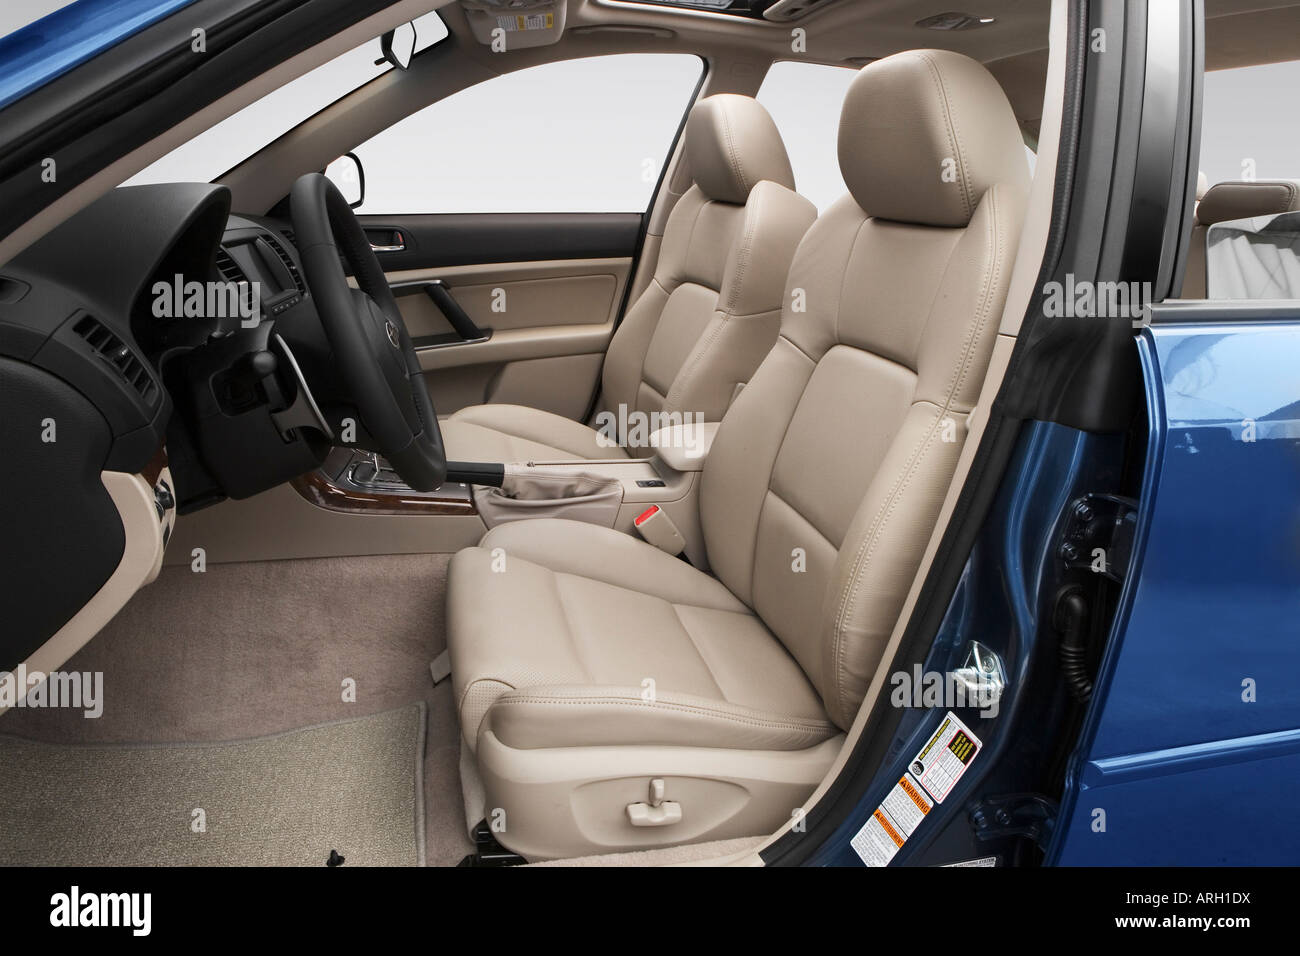 2008 subaru legacy 2.5 gt limited in blue - front seats stock